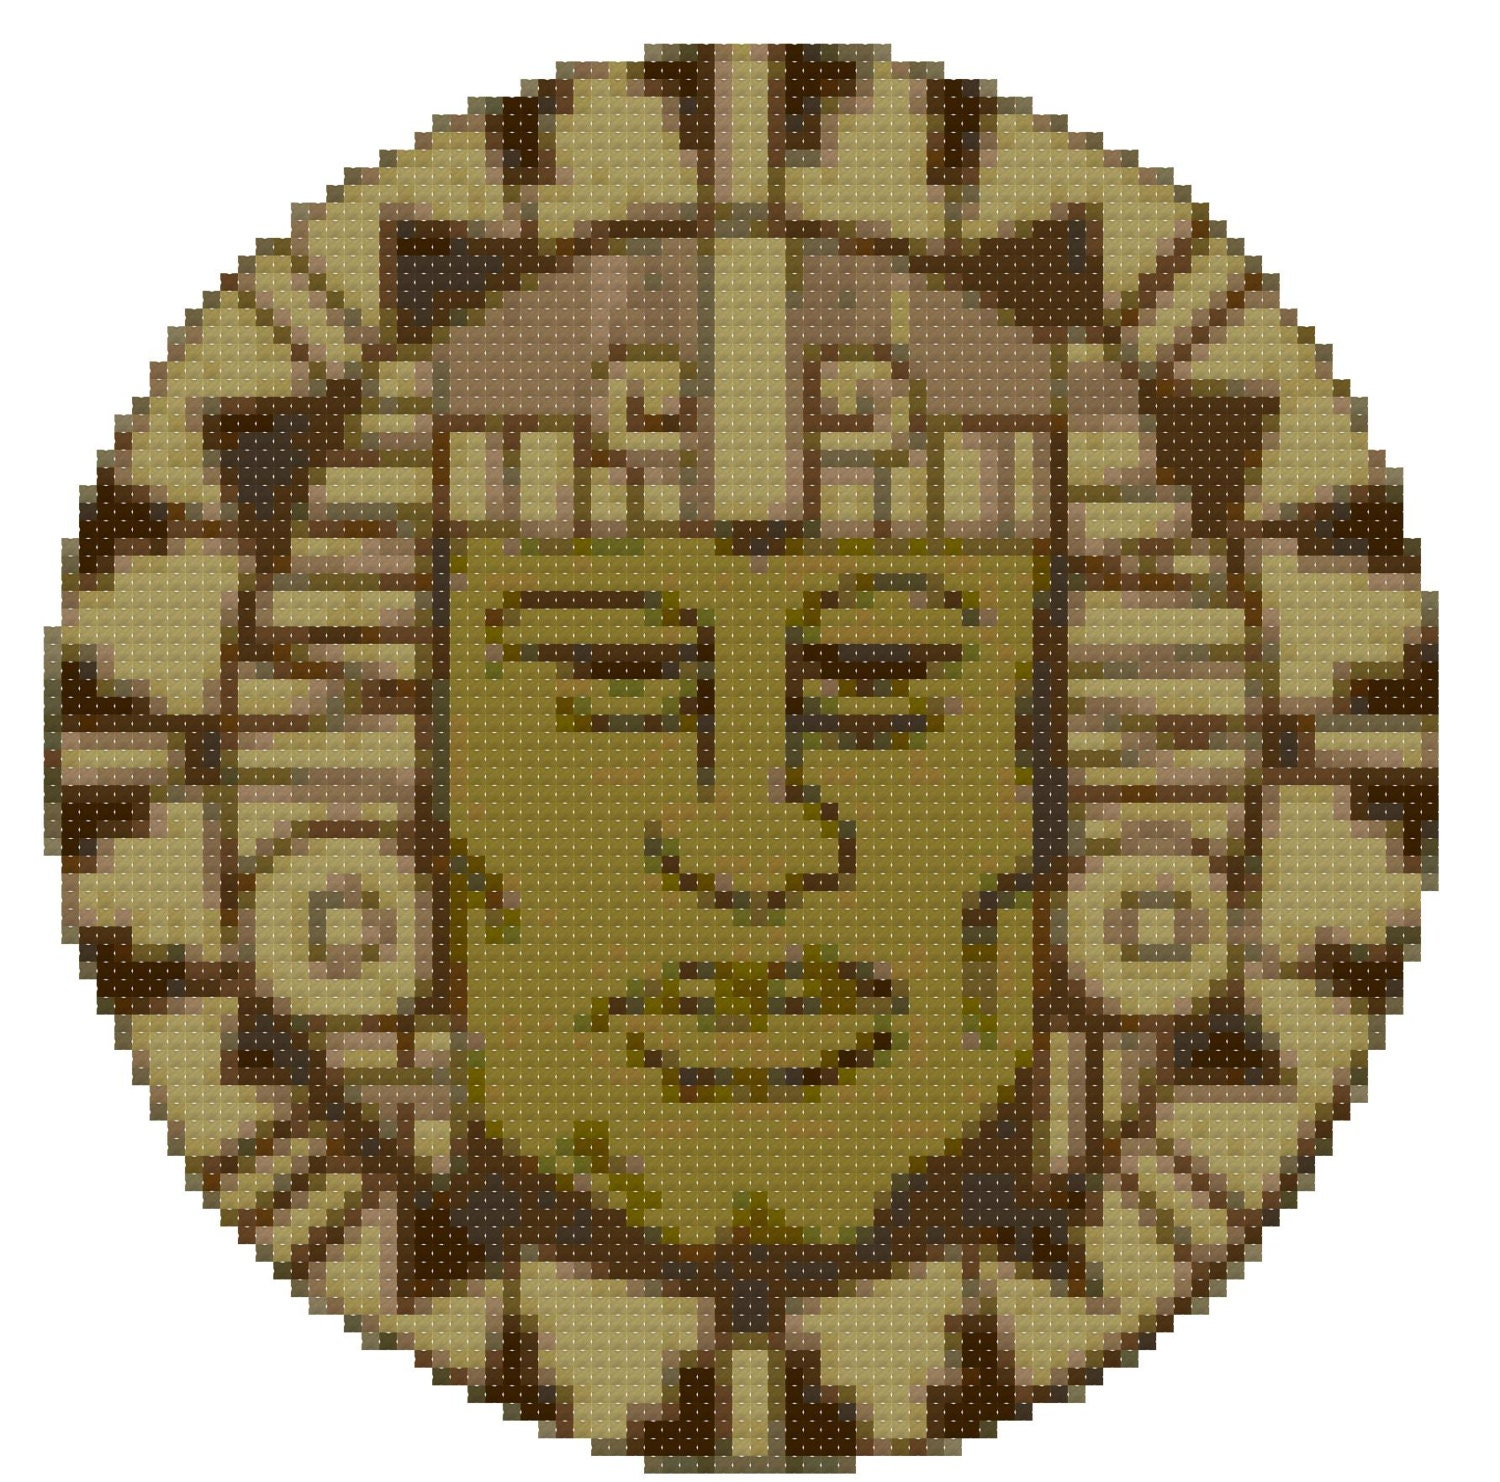 Legends of the hidden temple pendant of life the gallery for legends of the hidden temple pendant of life download aloadofball Gallery